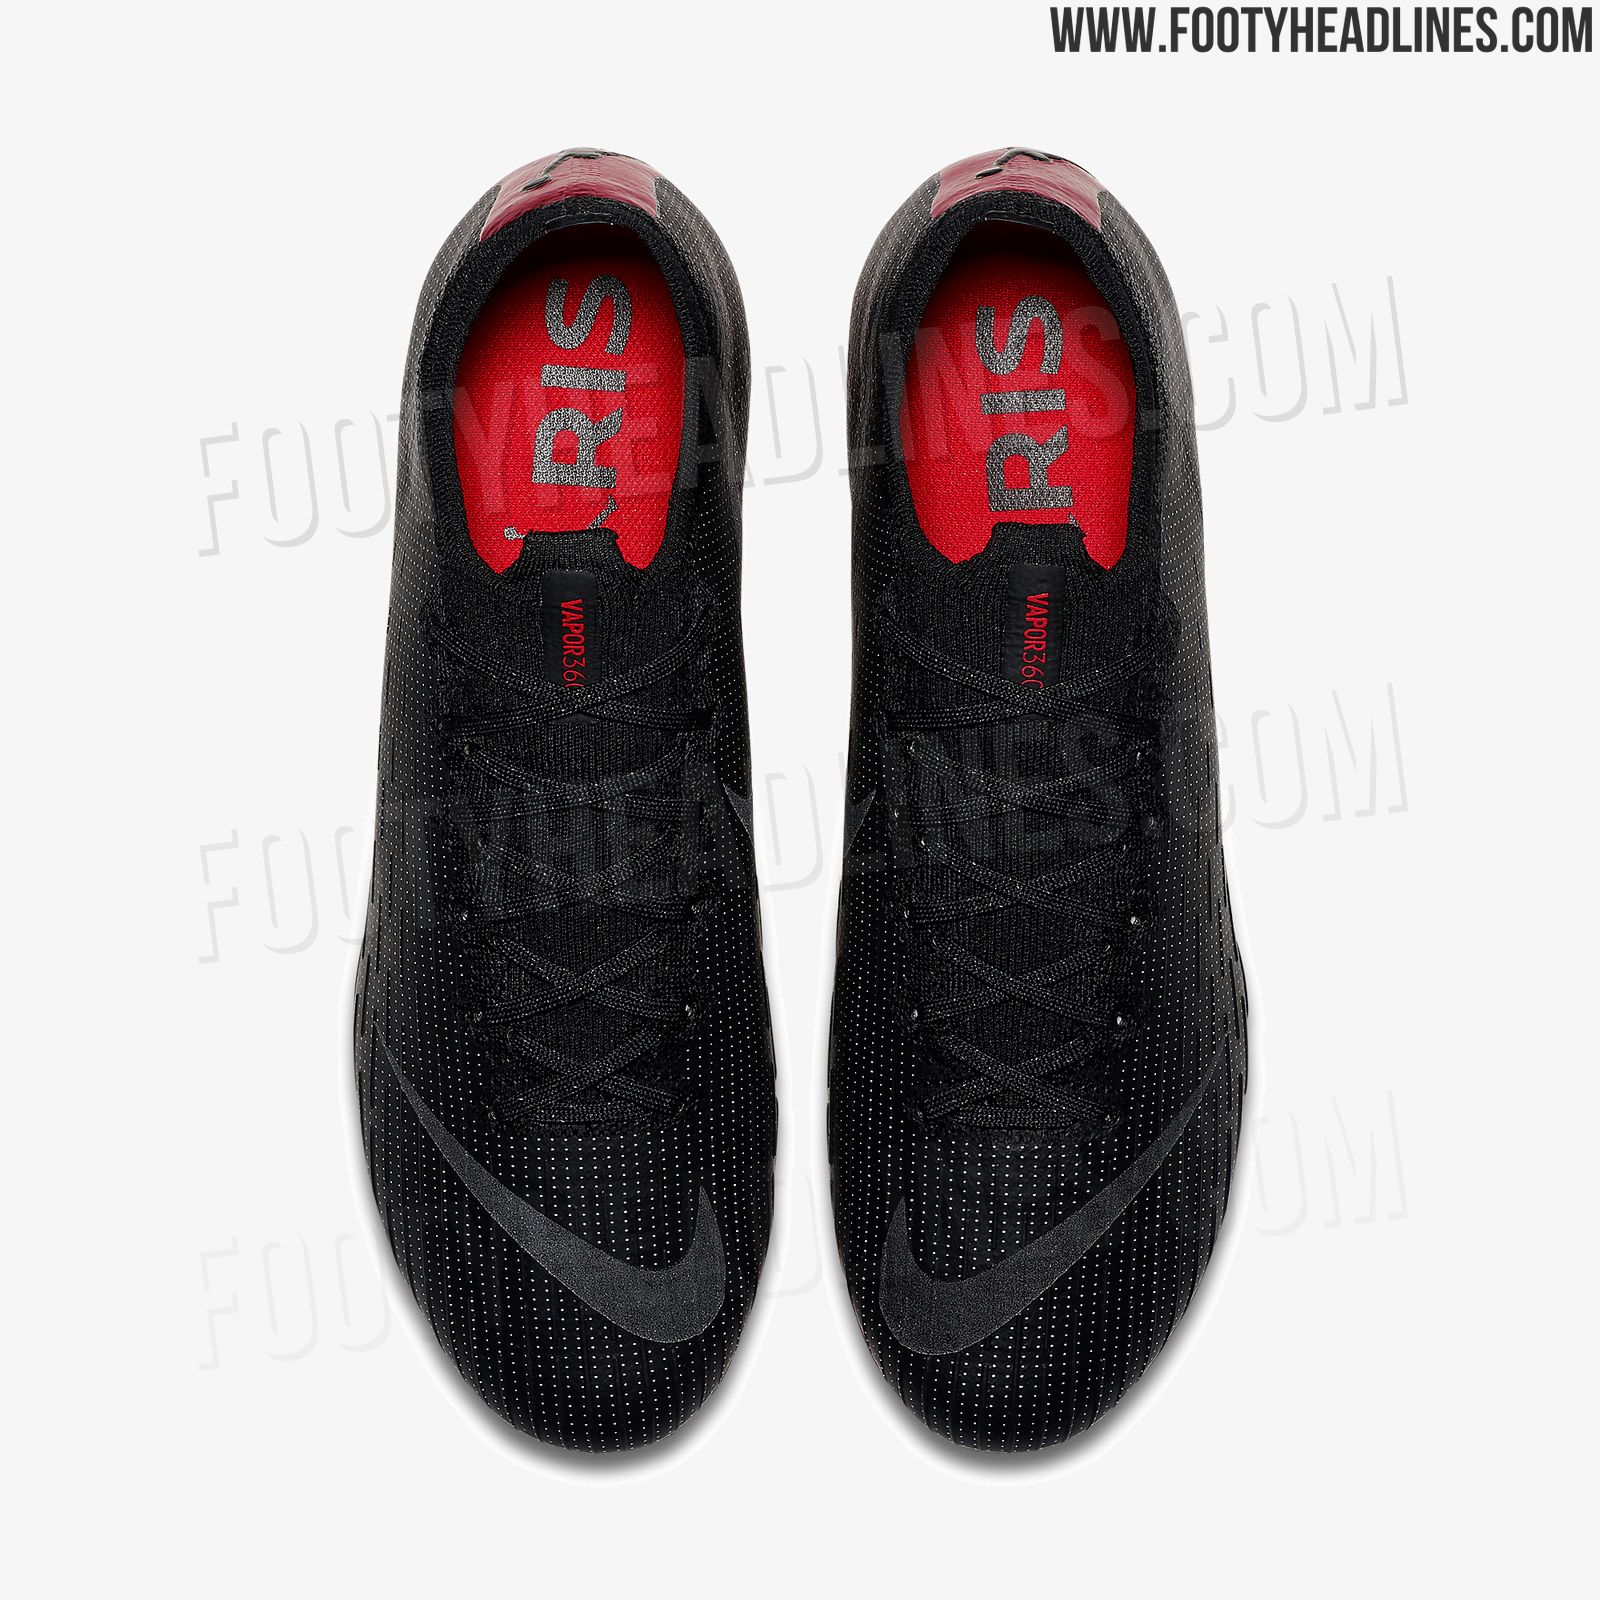 47e935410e1 BREAKING: 8 new, official pictures of the PSG x Jordan Nike Mercurial Vapor  boots have leaked. They will be launched on September 13, together with the  rest ...